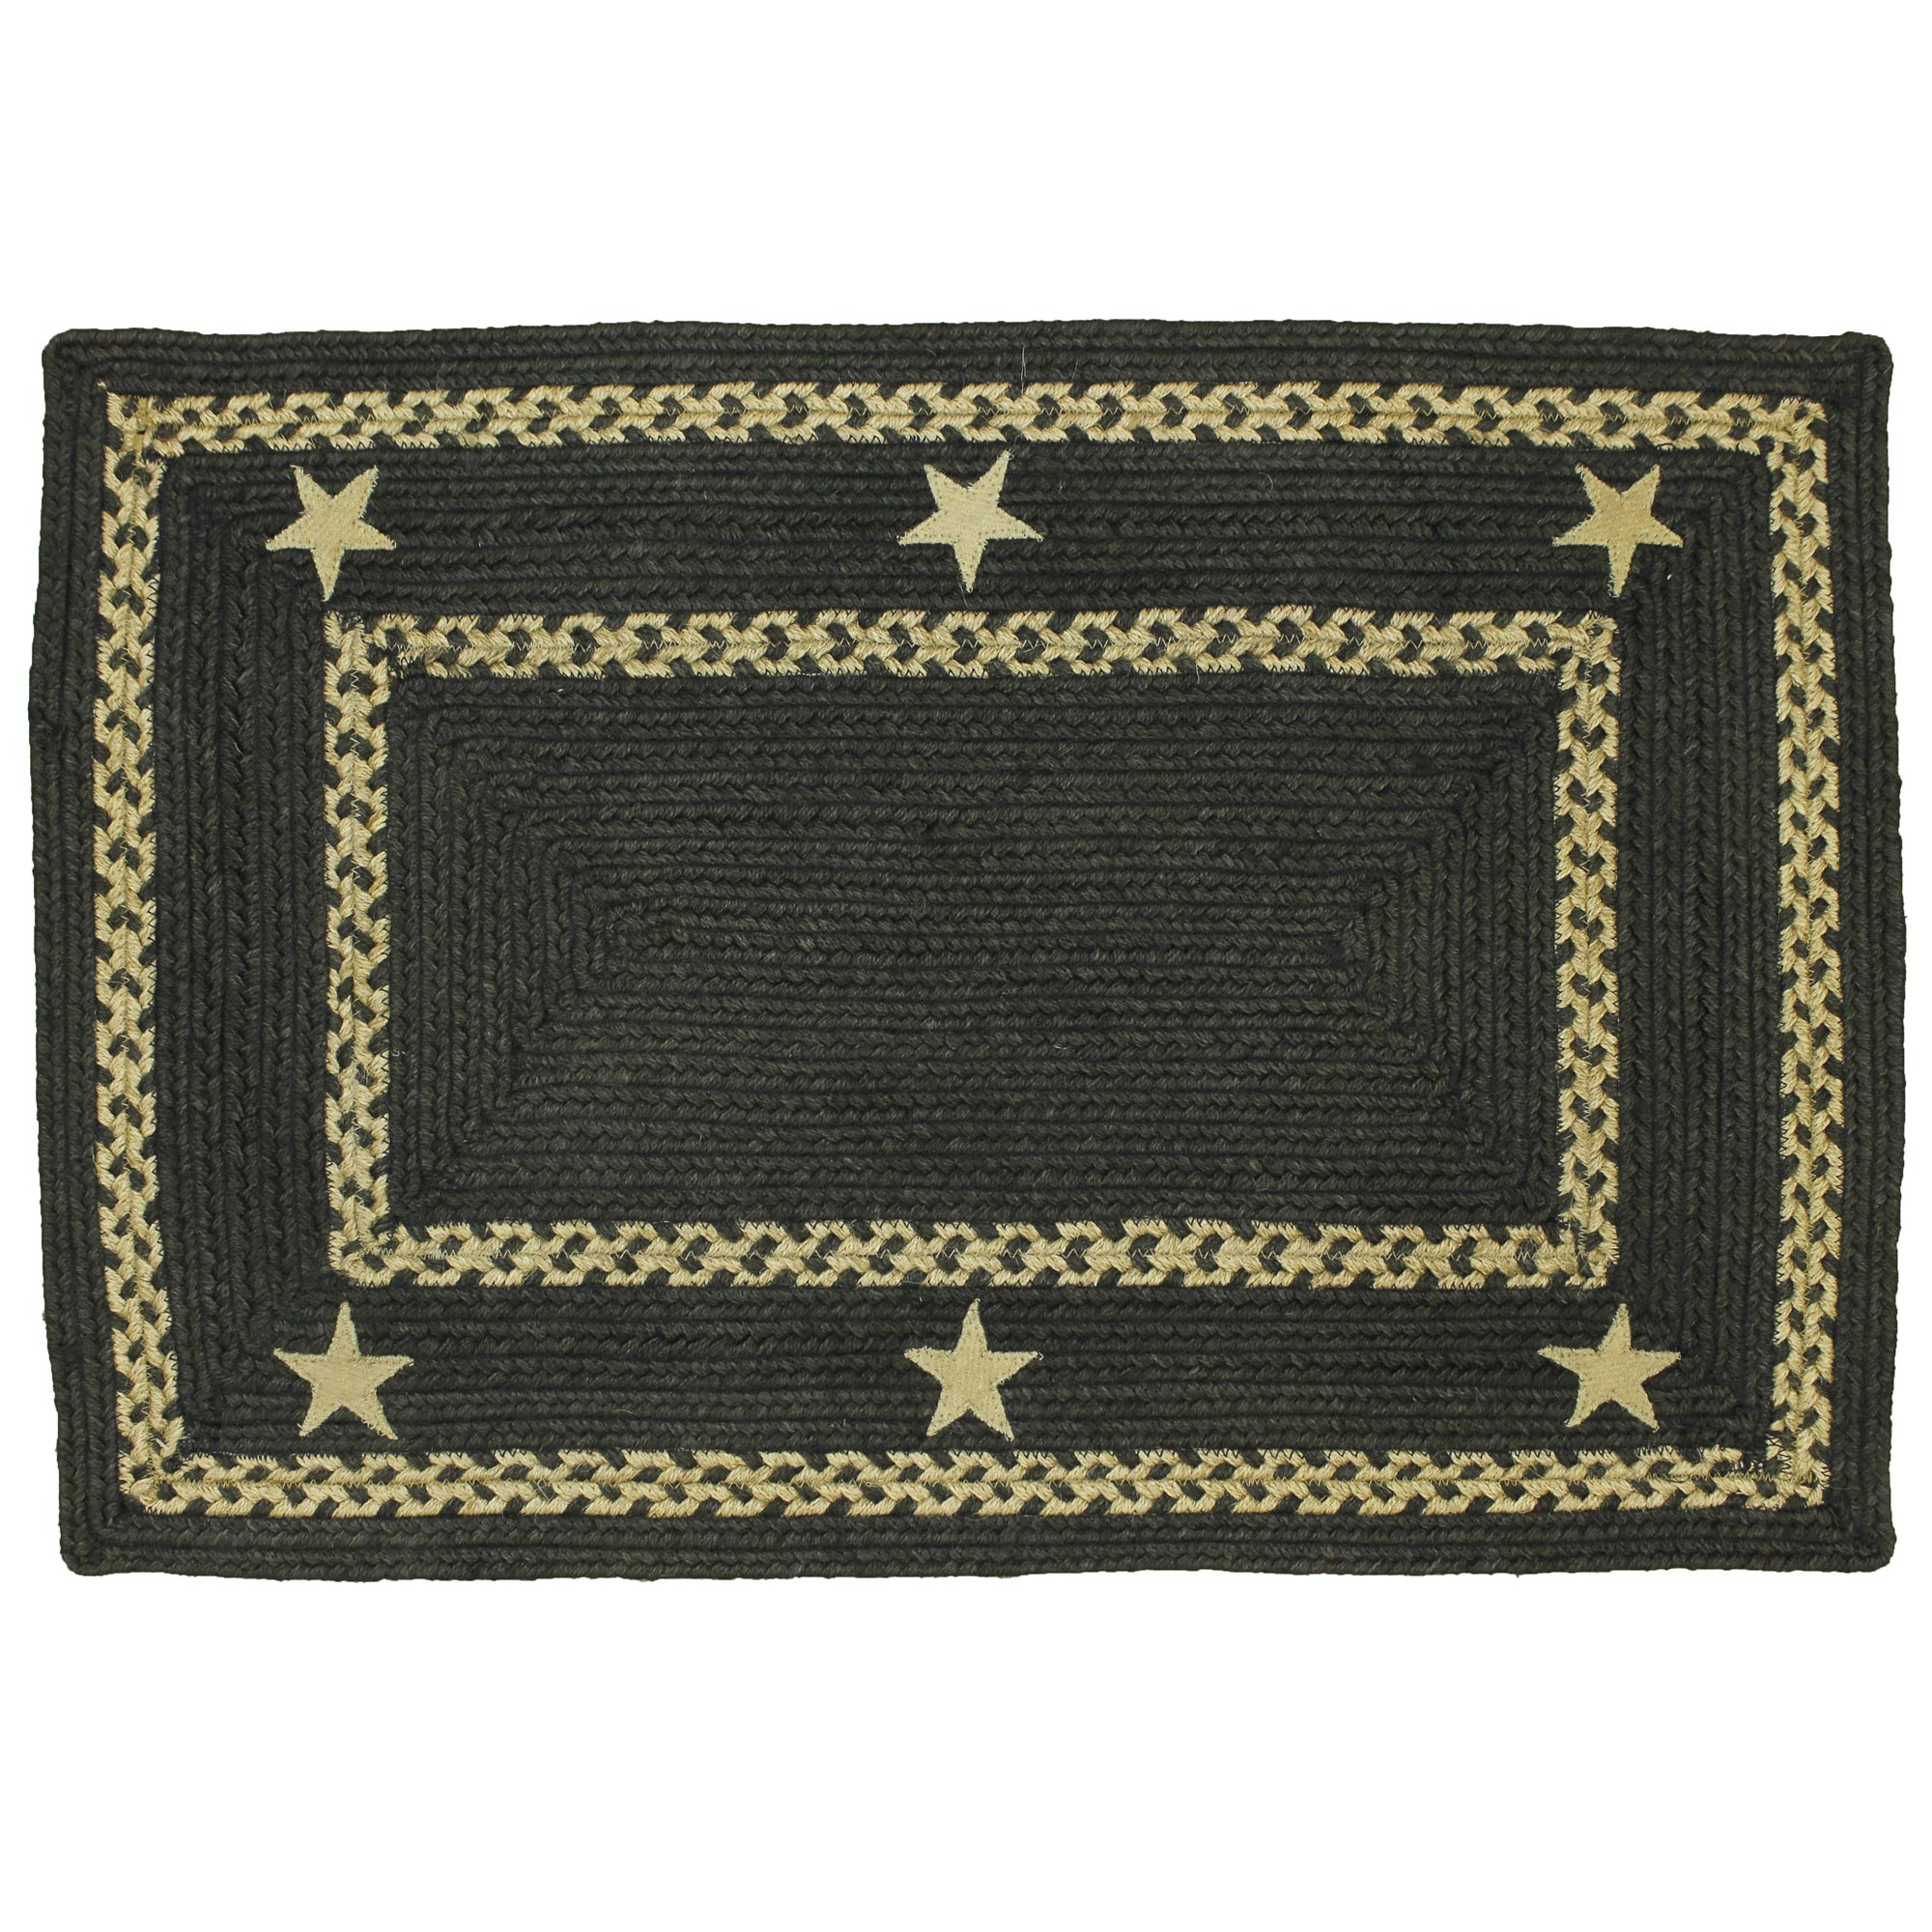 braided kitchen rugs ninja com 8x10 jute area rug biscotti cotton